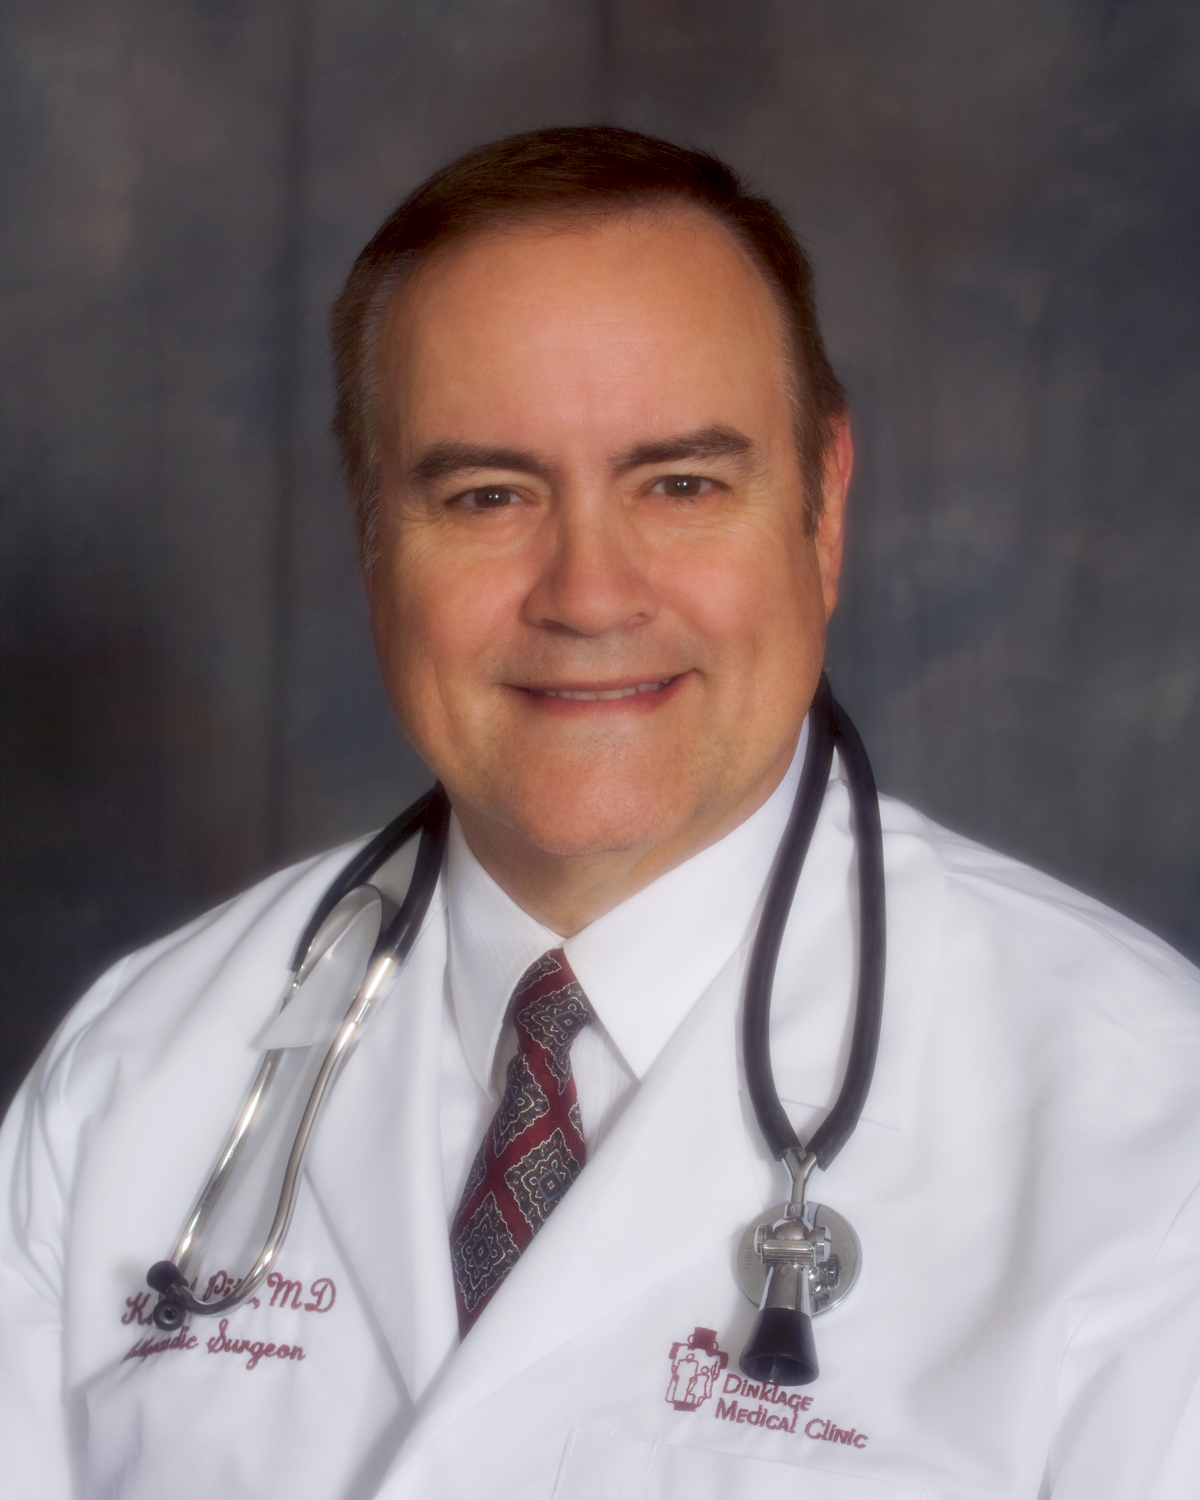 Kenneth Pitz, M.D., FAAOS